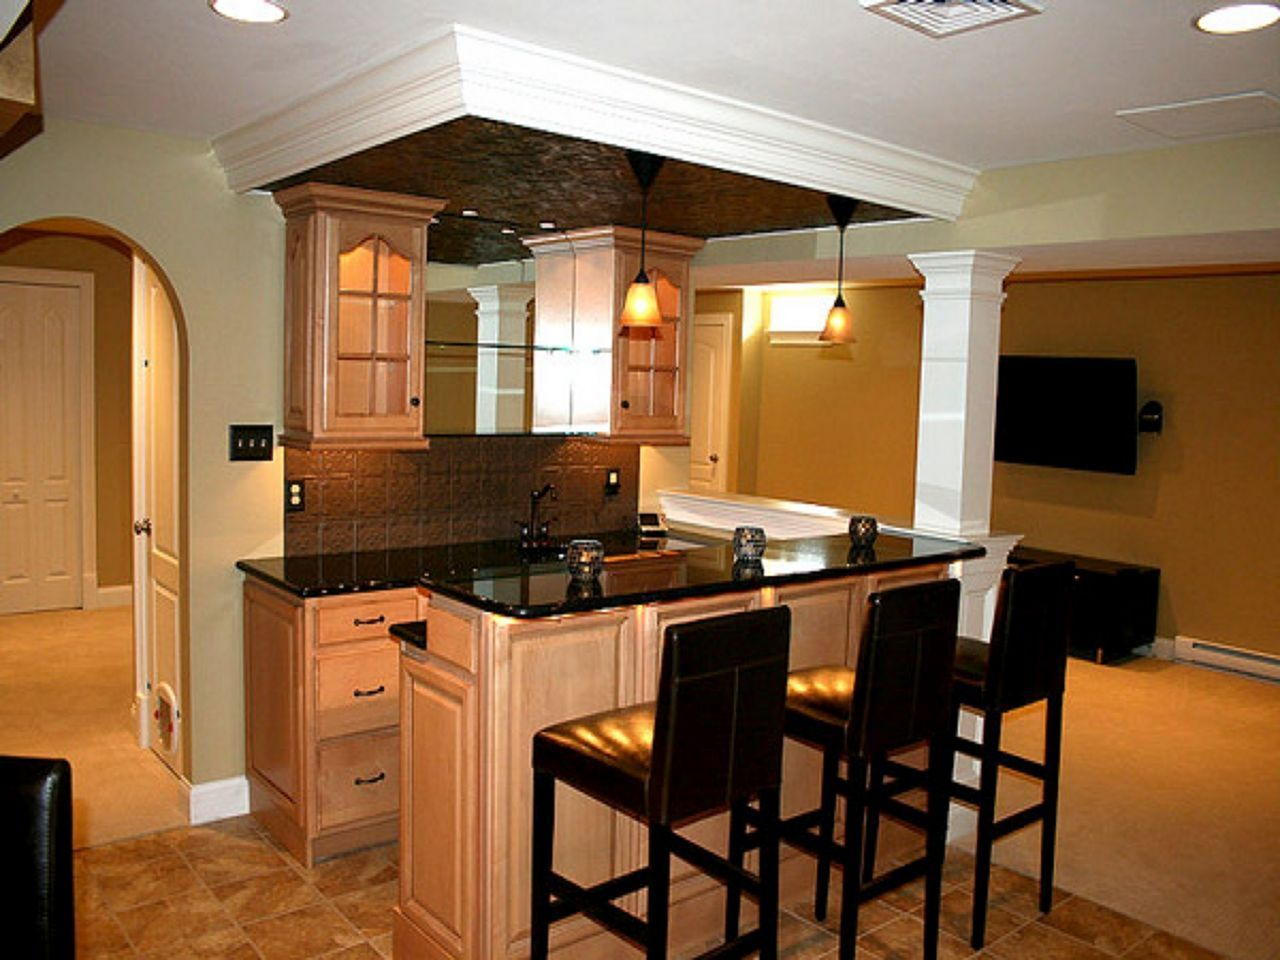 Wonderful 25 Small Kitchen Bar Design Ideas For Your Home In 2020 With Images Small Basement Kitchen Kitchen Bar Design Basement Bar Plans